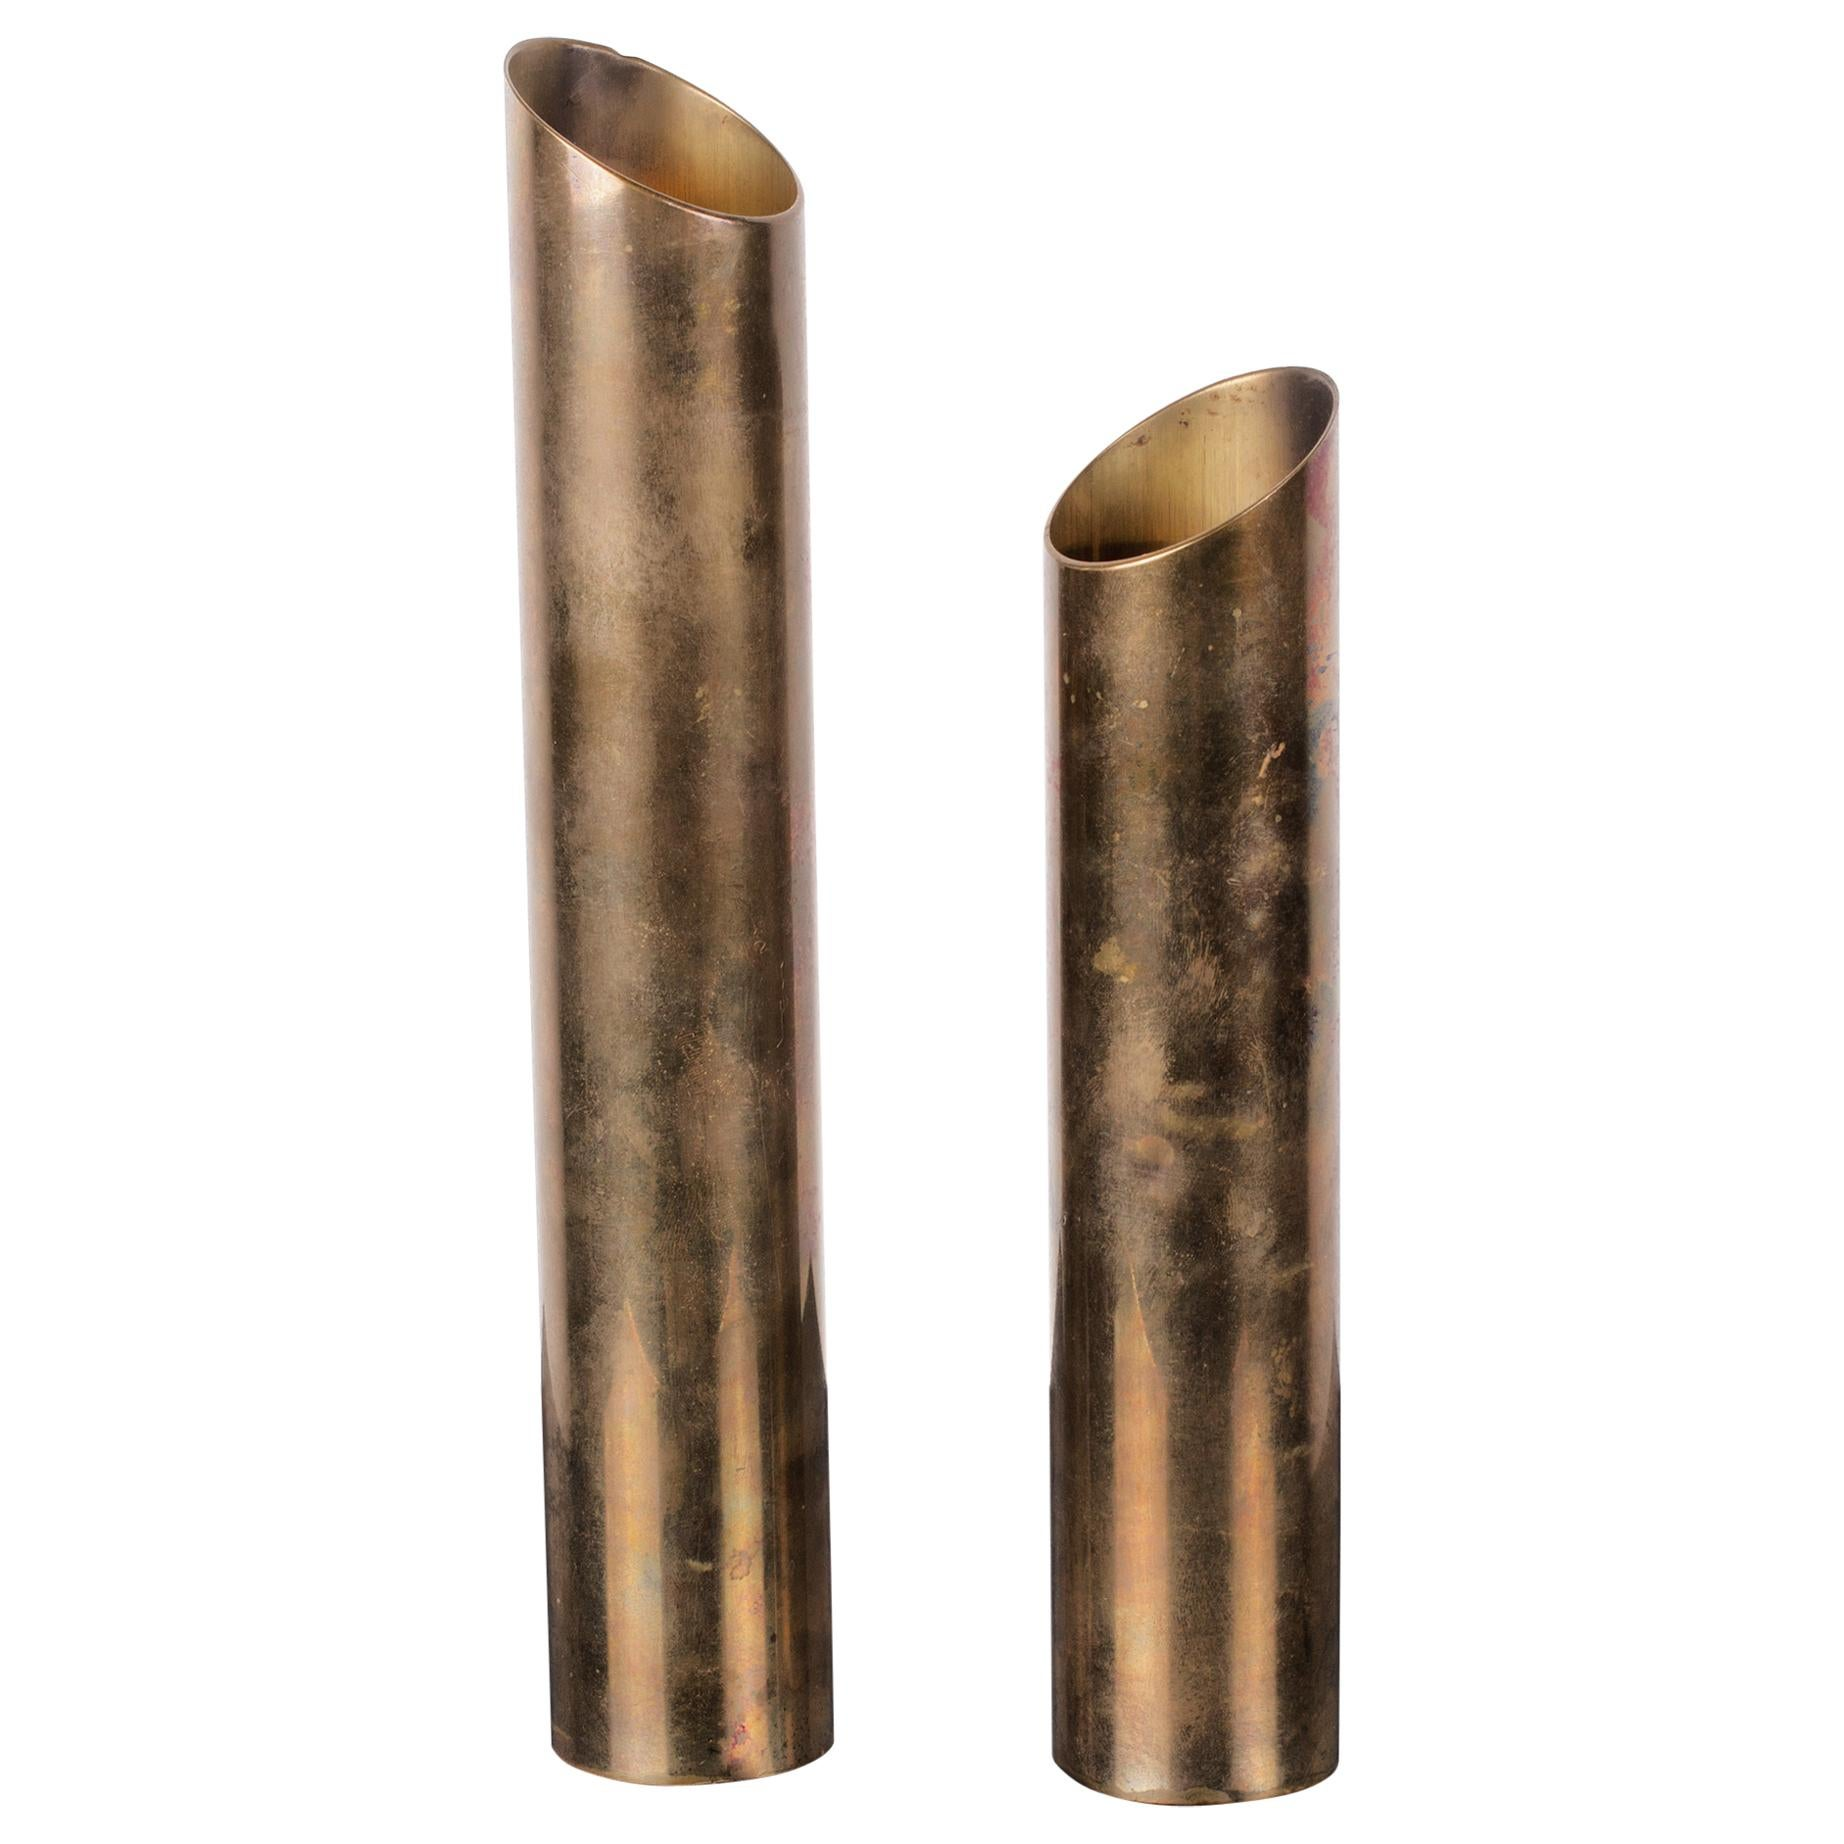 Pair of Mid-Century Modern Patinated Brass Tube Candlestick Holders